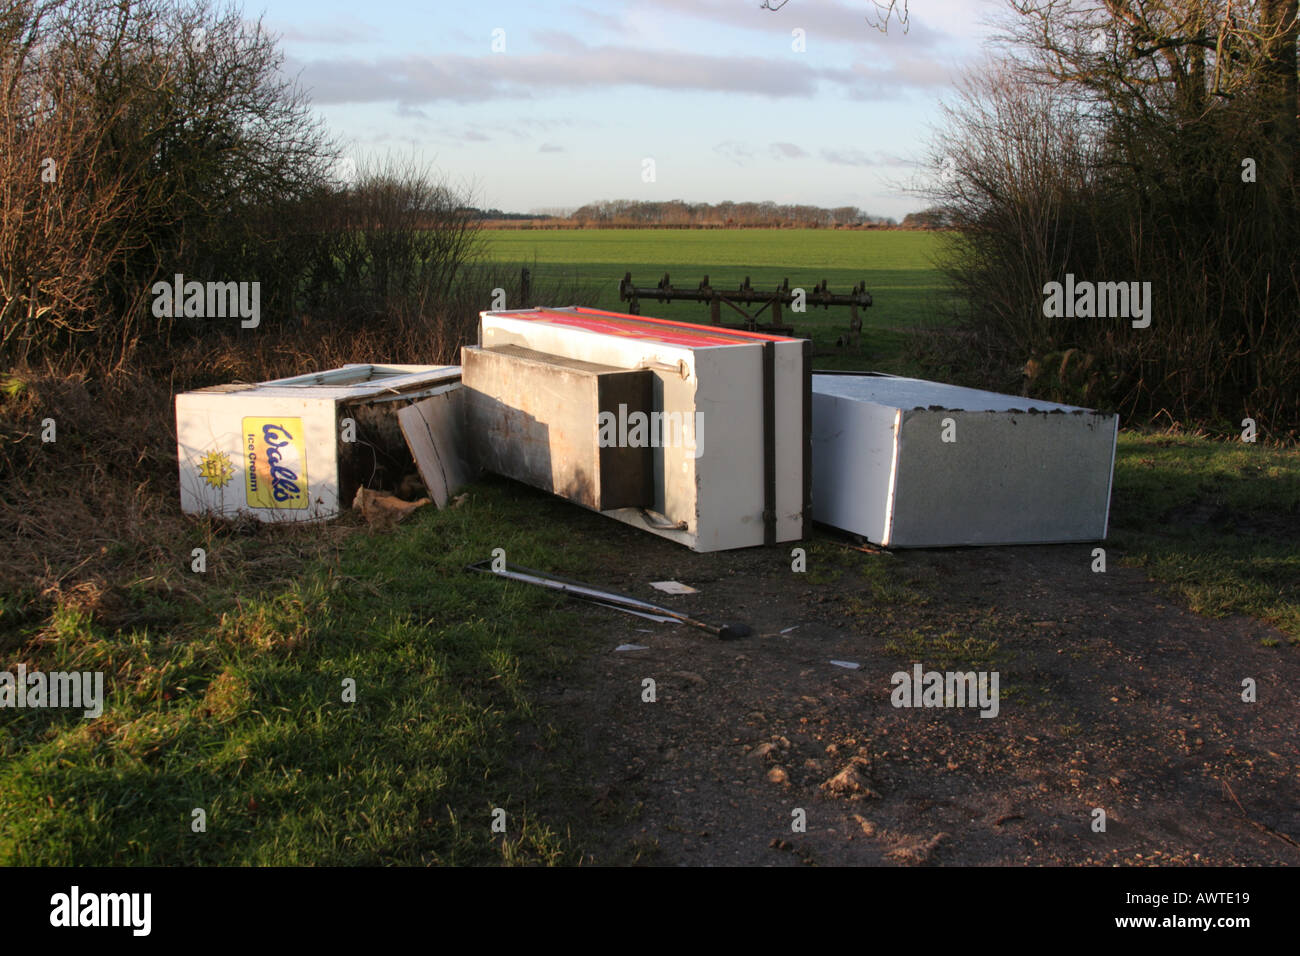 Discarded freezers by field entrance - Stock Image